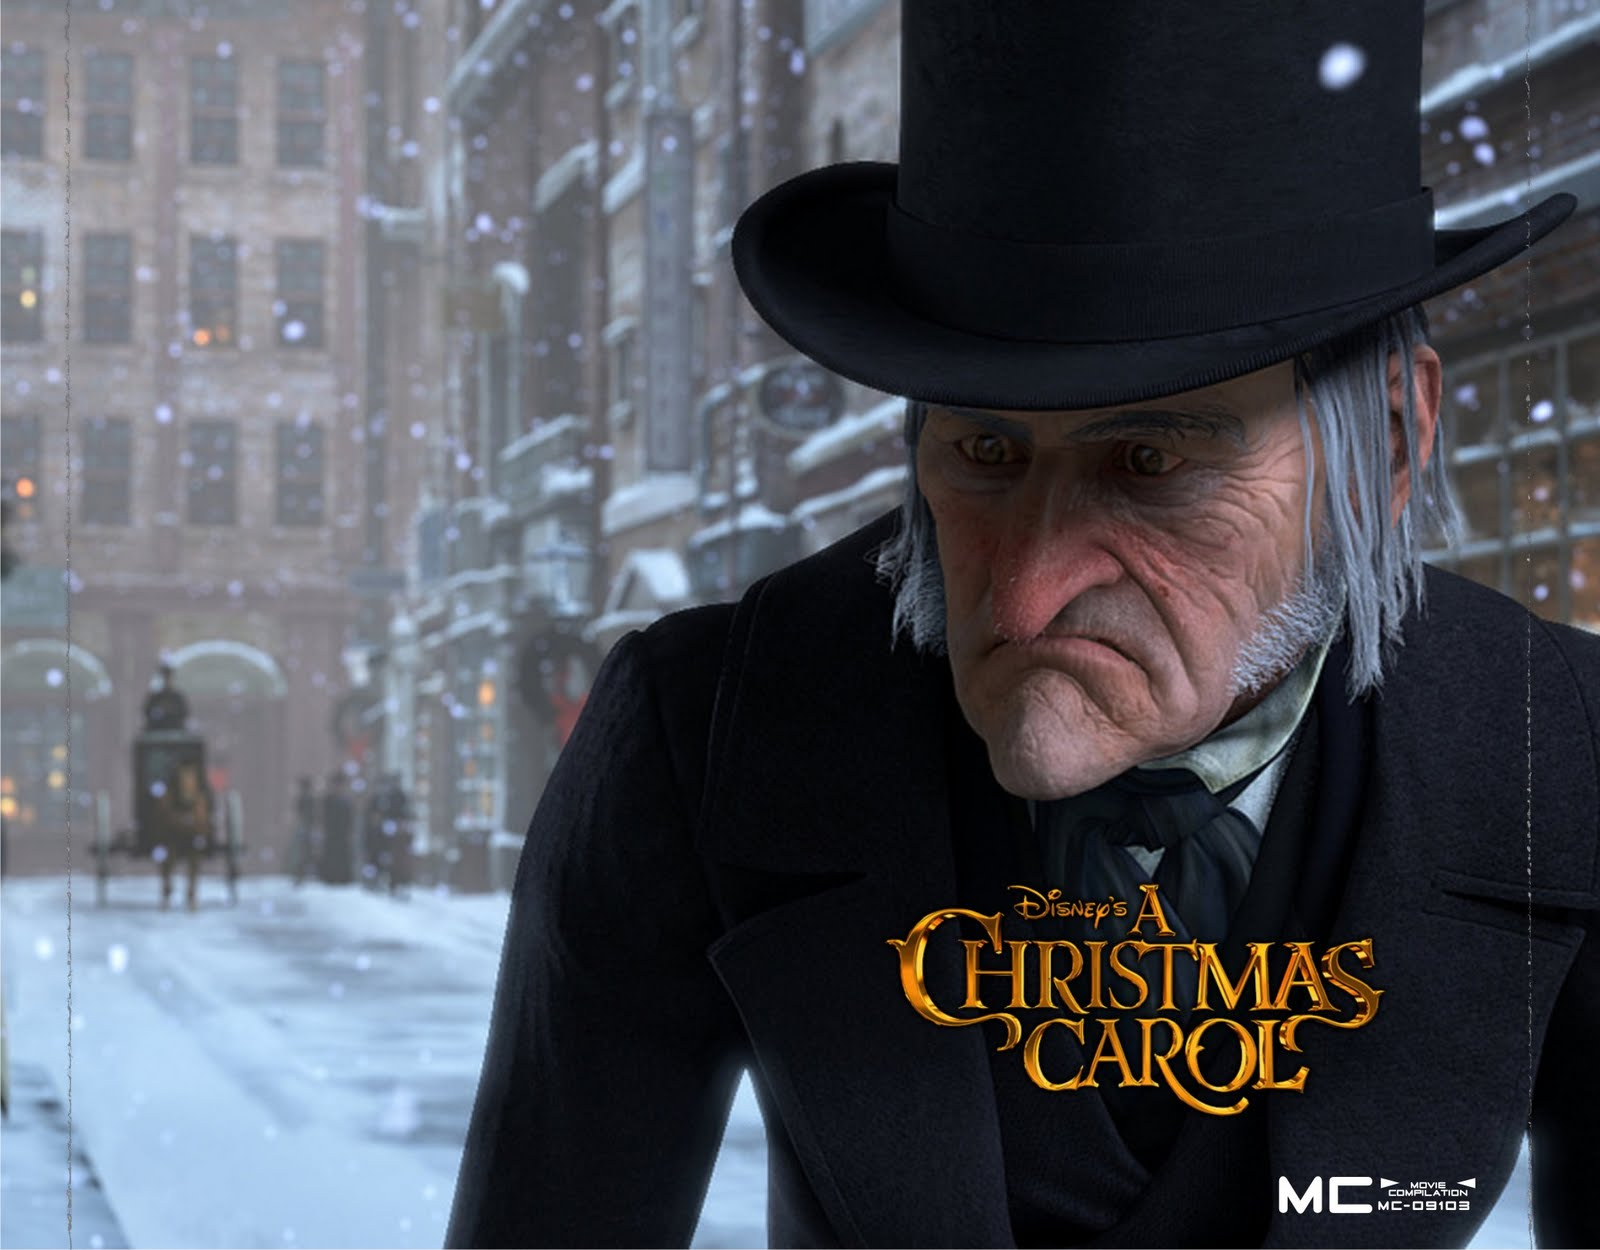 dickens a christmas carol essays Use our free chapter-by-chapter summary and analysis of a christmas carol it  helps middle and high school students understand charles dickens's literary   and planned to come out with a moralizing essay about the horrors he saw then .